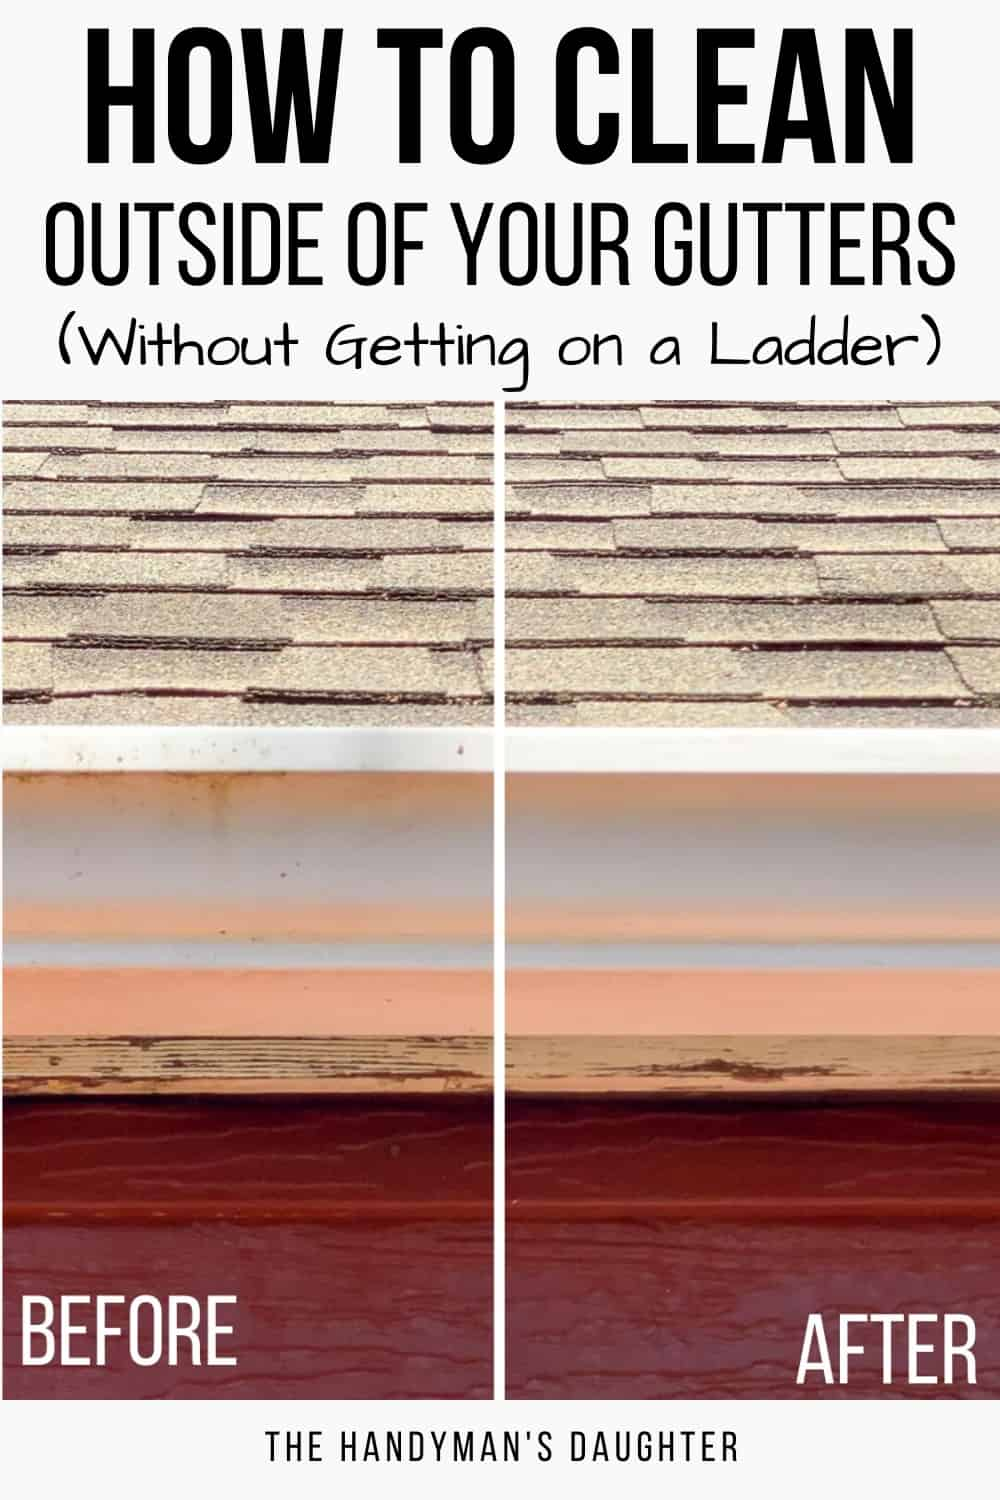 How to clean outside of gutters without getting on a ladder